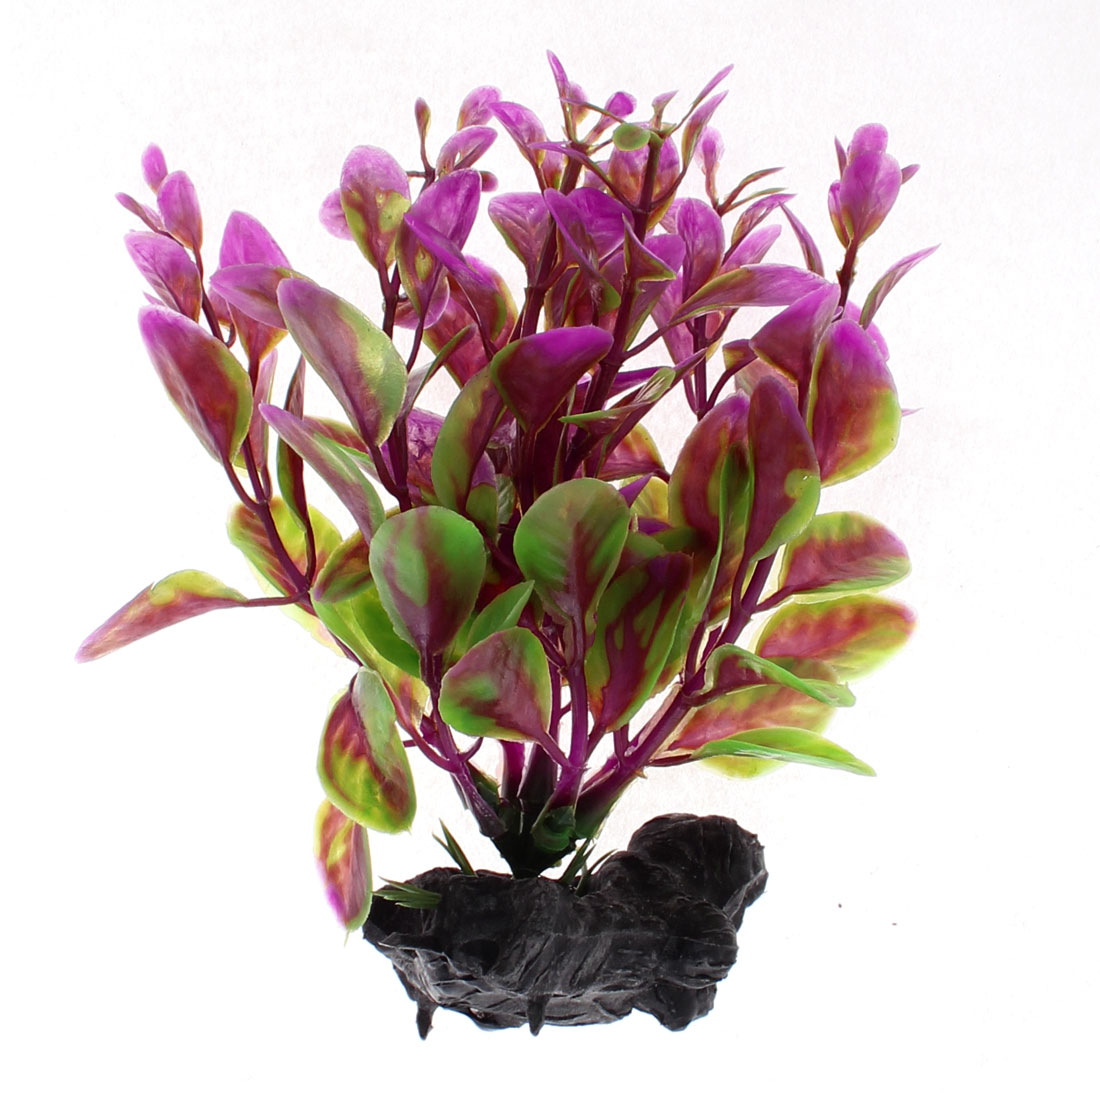 Aquarium Plastic Manmade Underwater Plant Grass Adornment